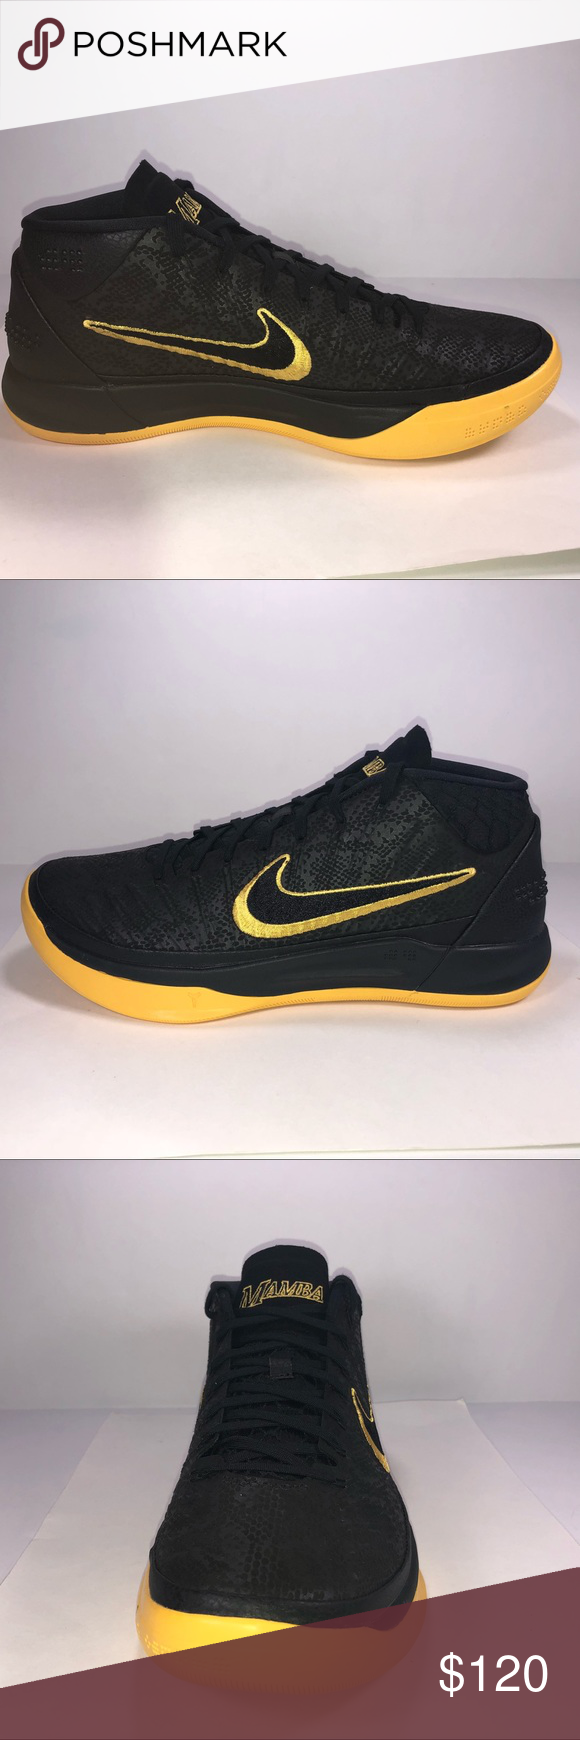 premium selection 2de5f 9915f Kobe AD Mid BM City Edition Black   Yellow Sneaker New With Damaged Box  Missing Lid See Pictures For Details. AQ5164-001 Nike Shoes Sneakers